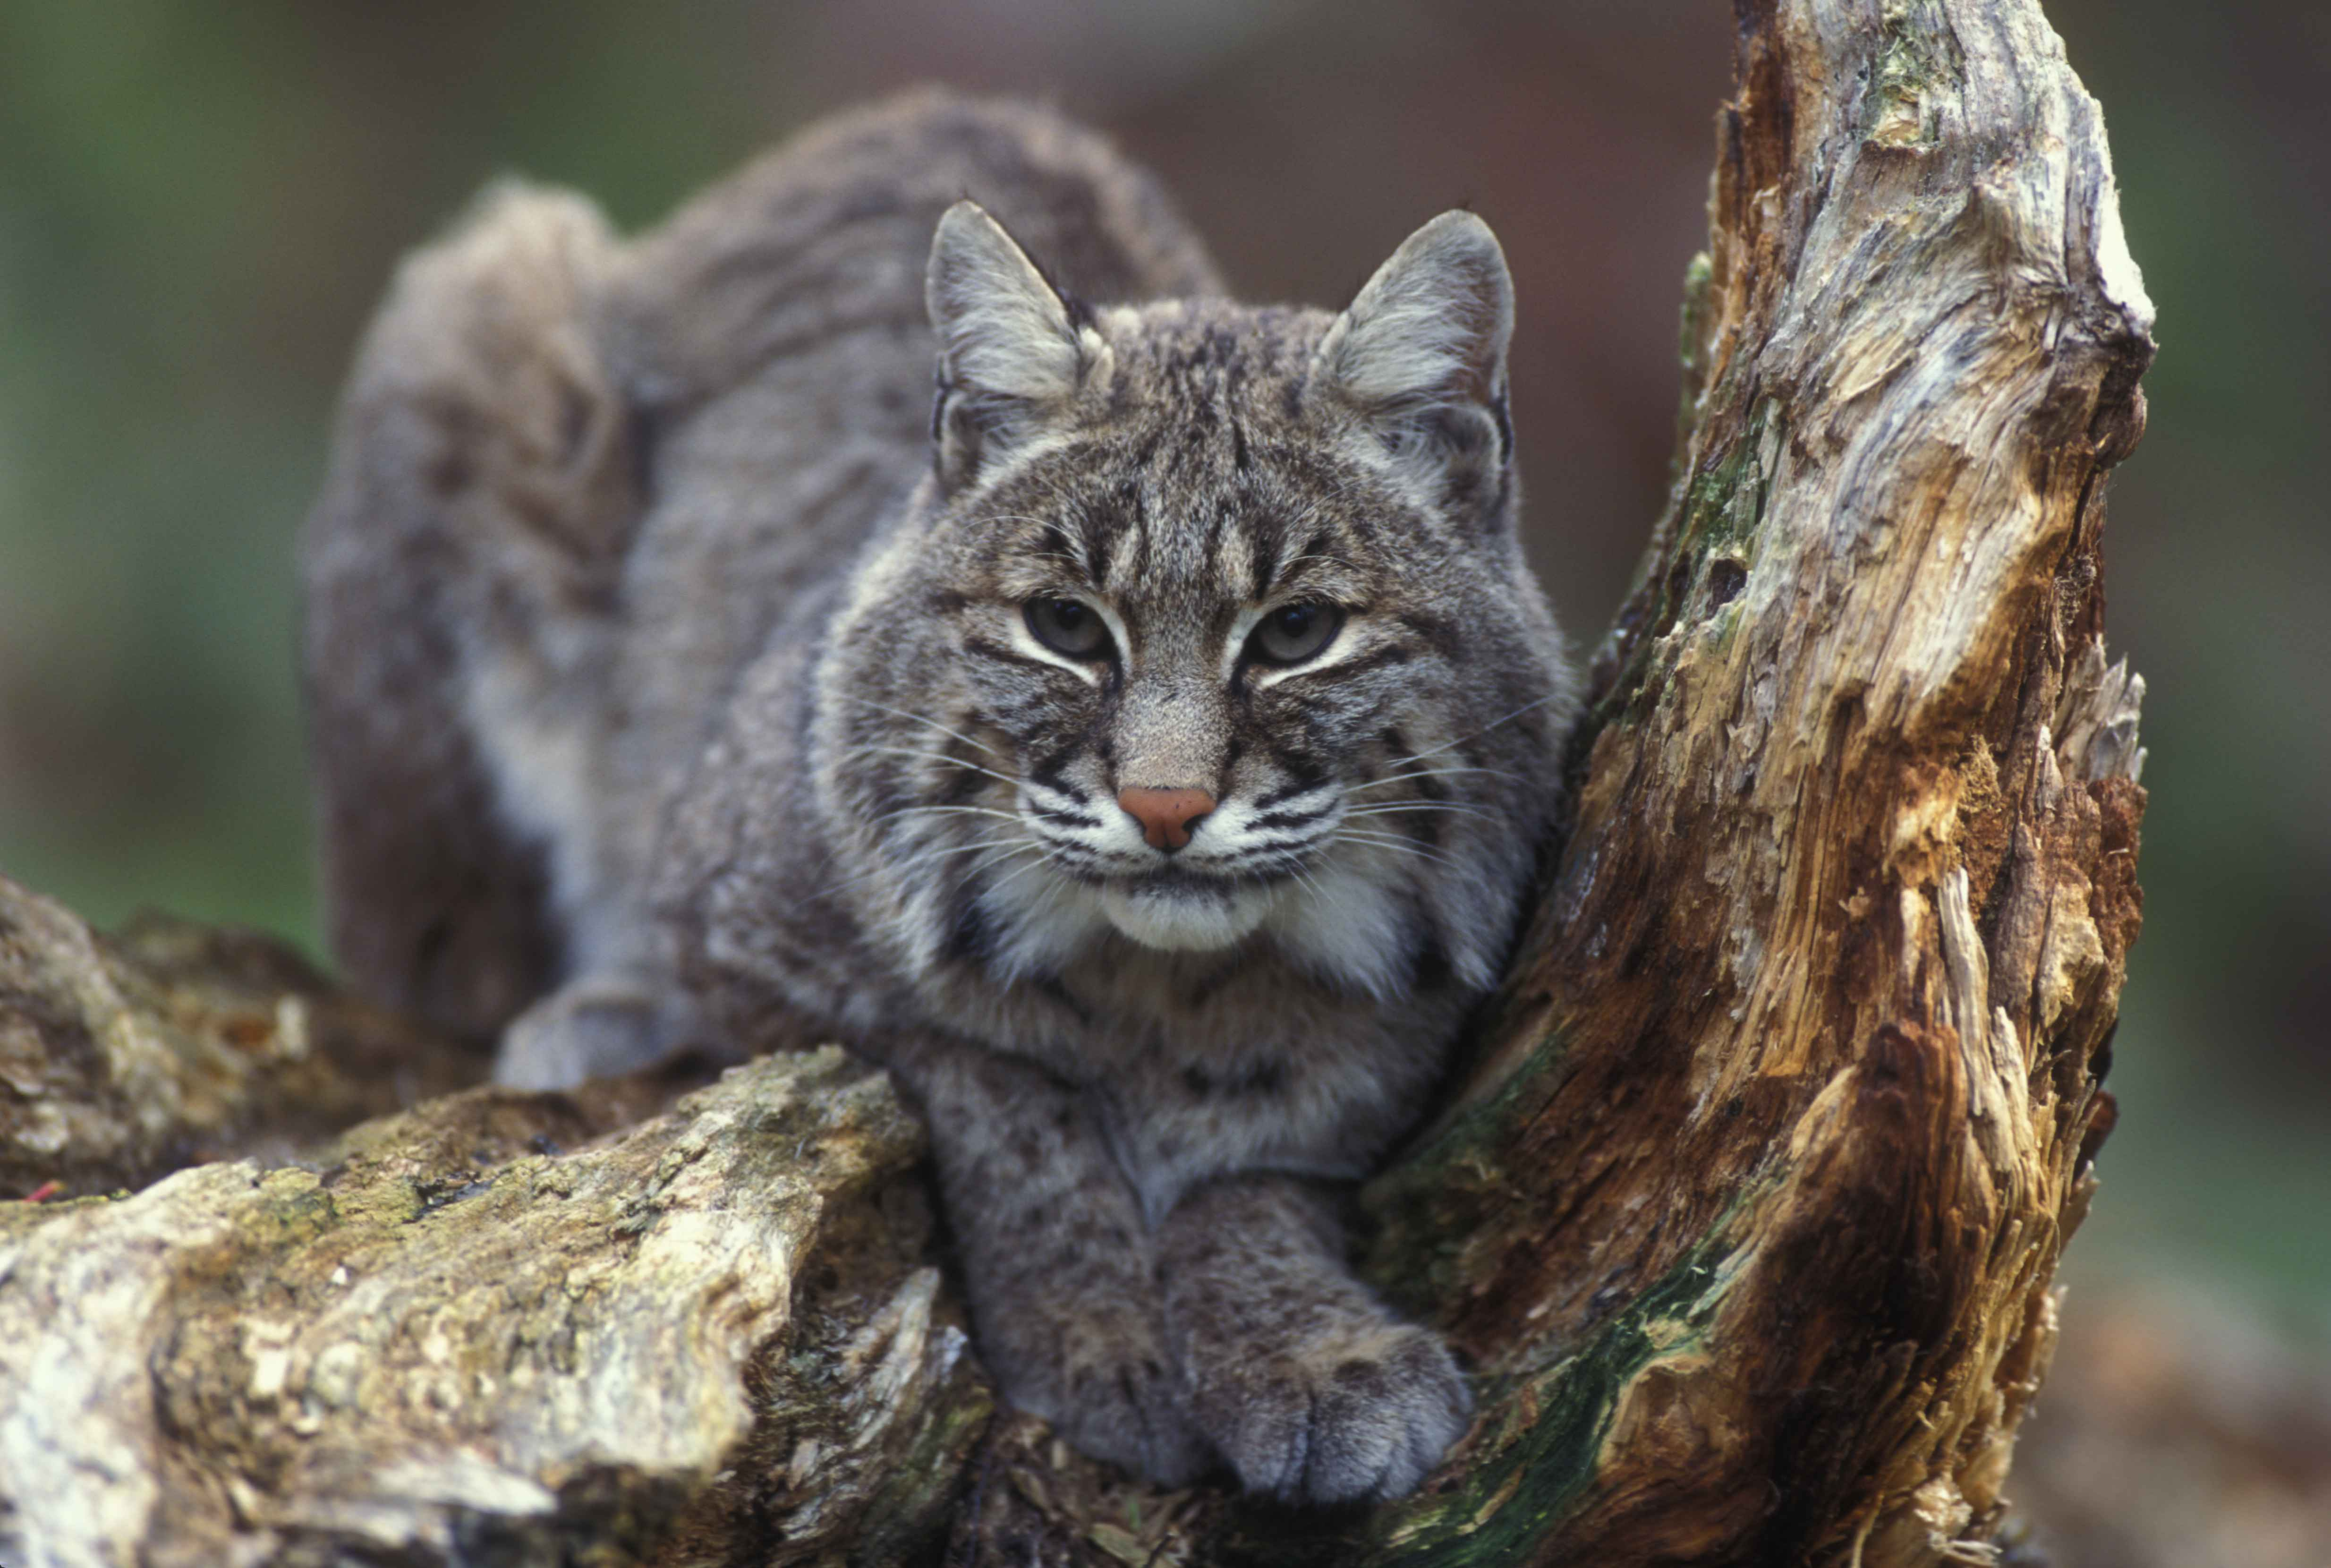 ... bobcat hunting in Illinois for the first time in more than 40 years